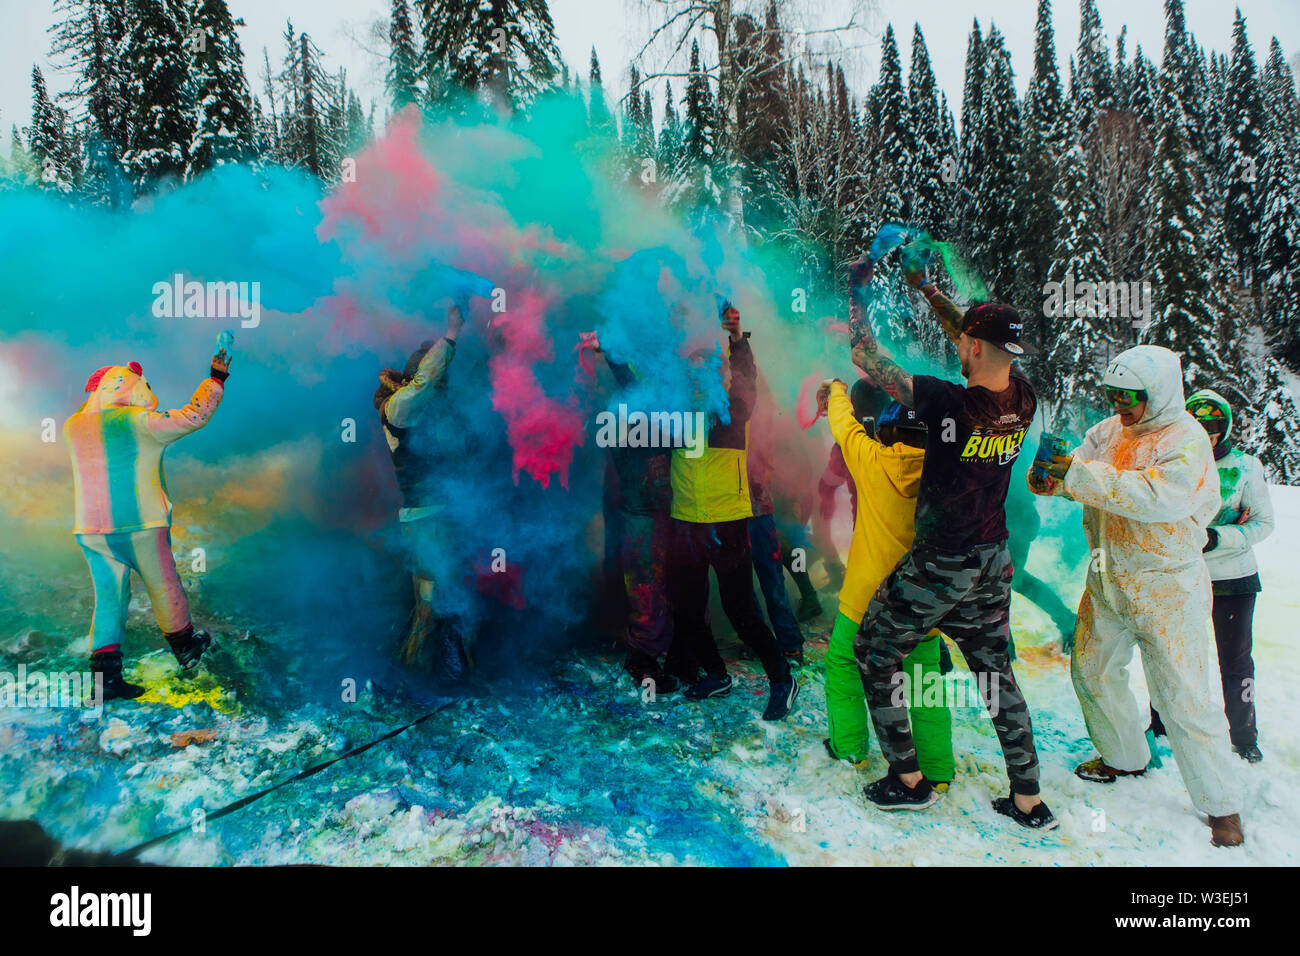 Sheregesh, Kemerovo region, Russia - April 06, 2019: Grelka Fest is a sports and entertainment activity for ski and snowboard riders in bikini. A grou Stock Photo